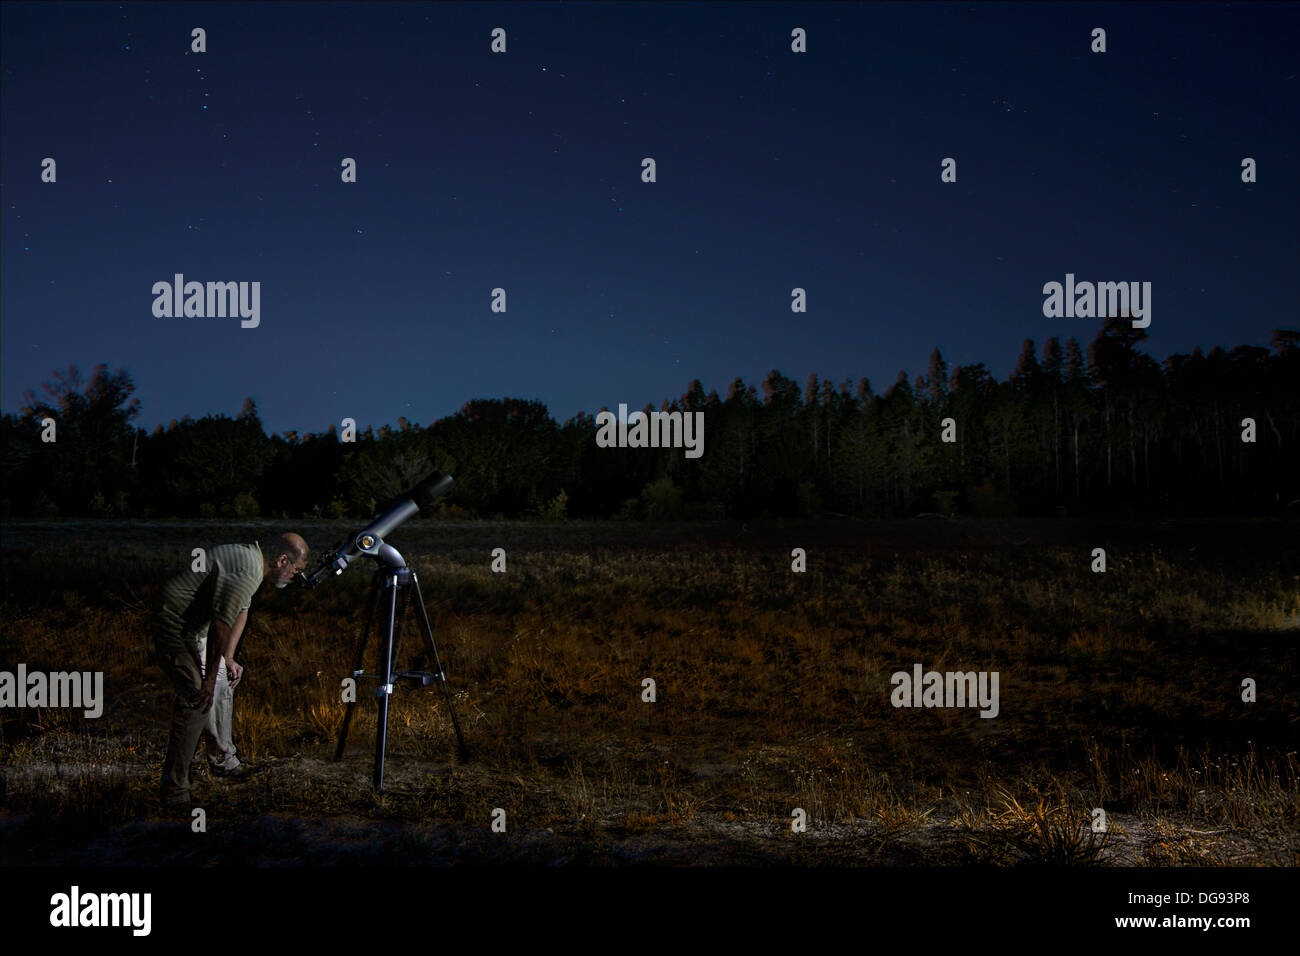 Man with telescope looking at night sky - Stock Image